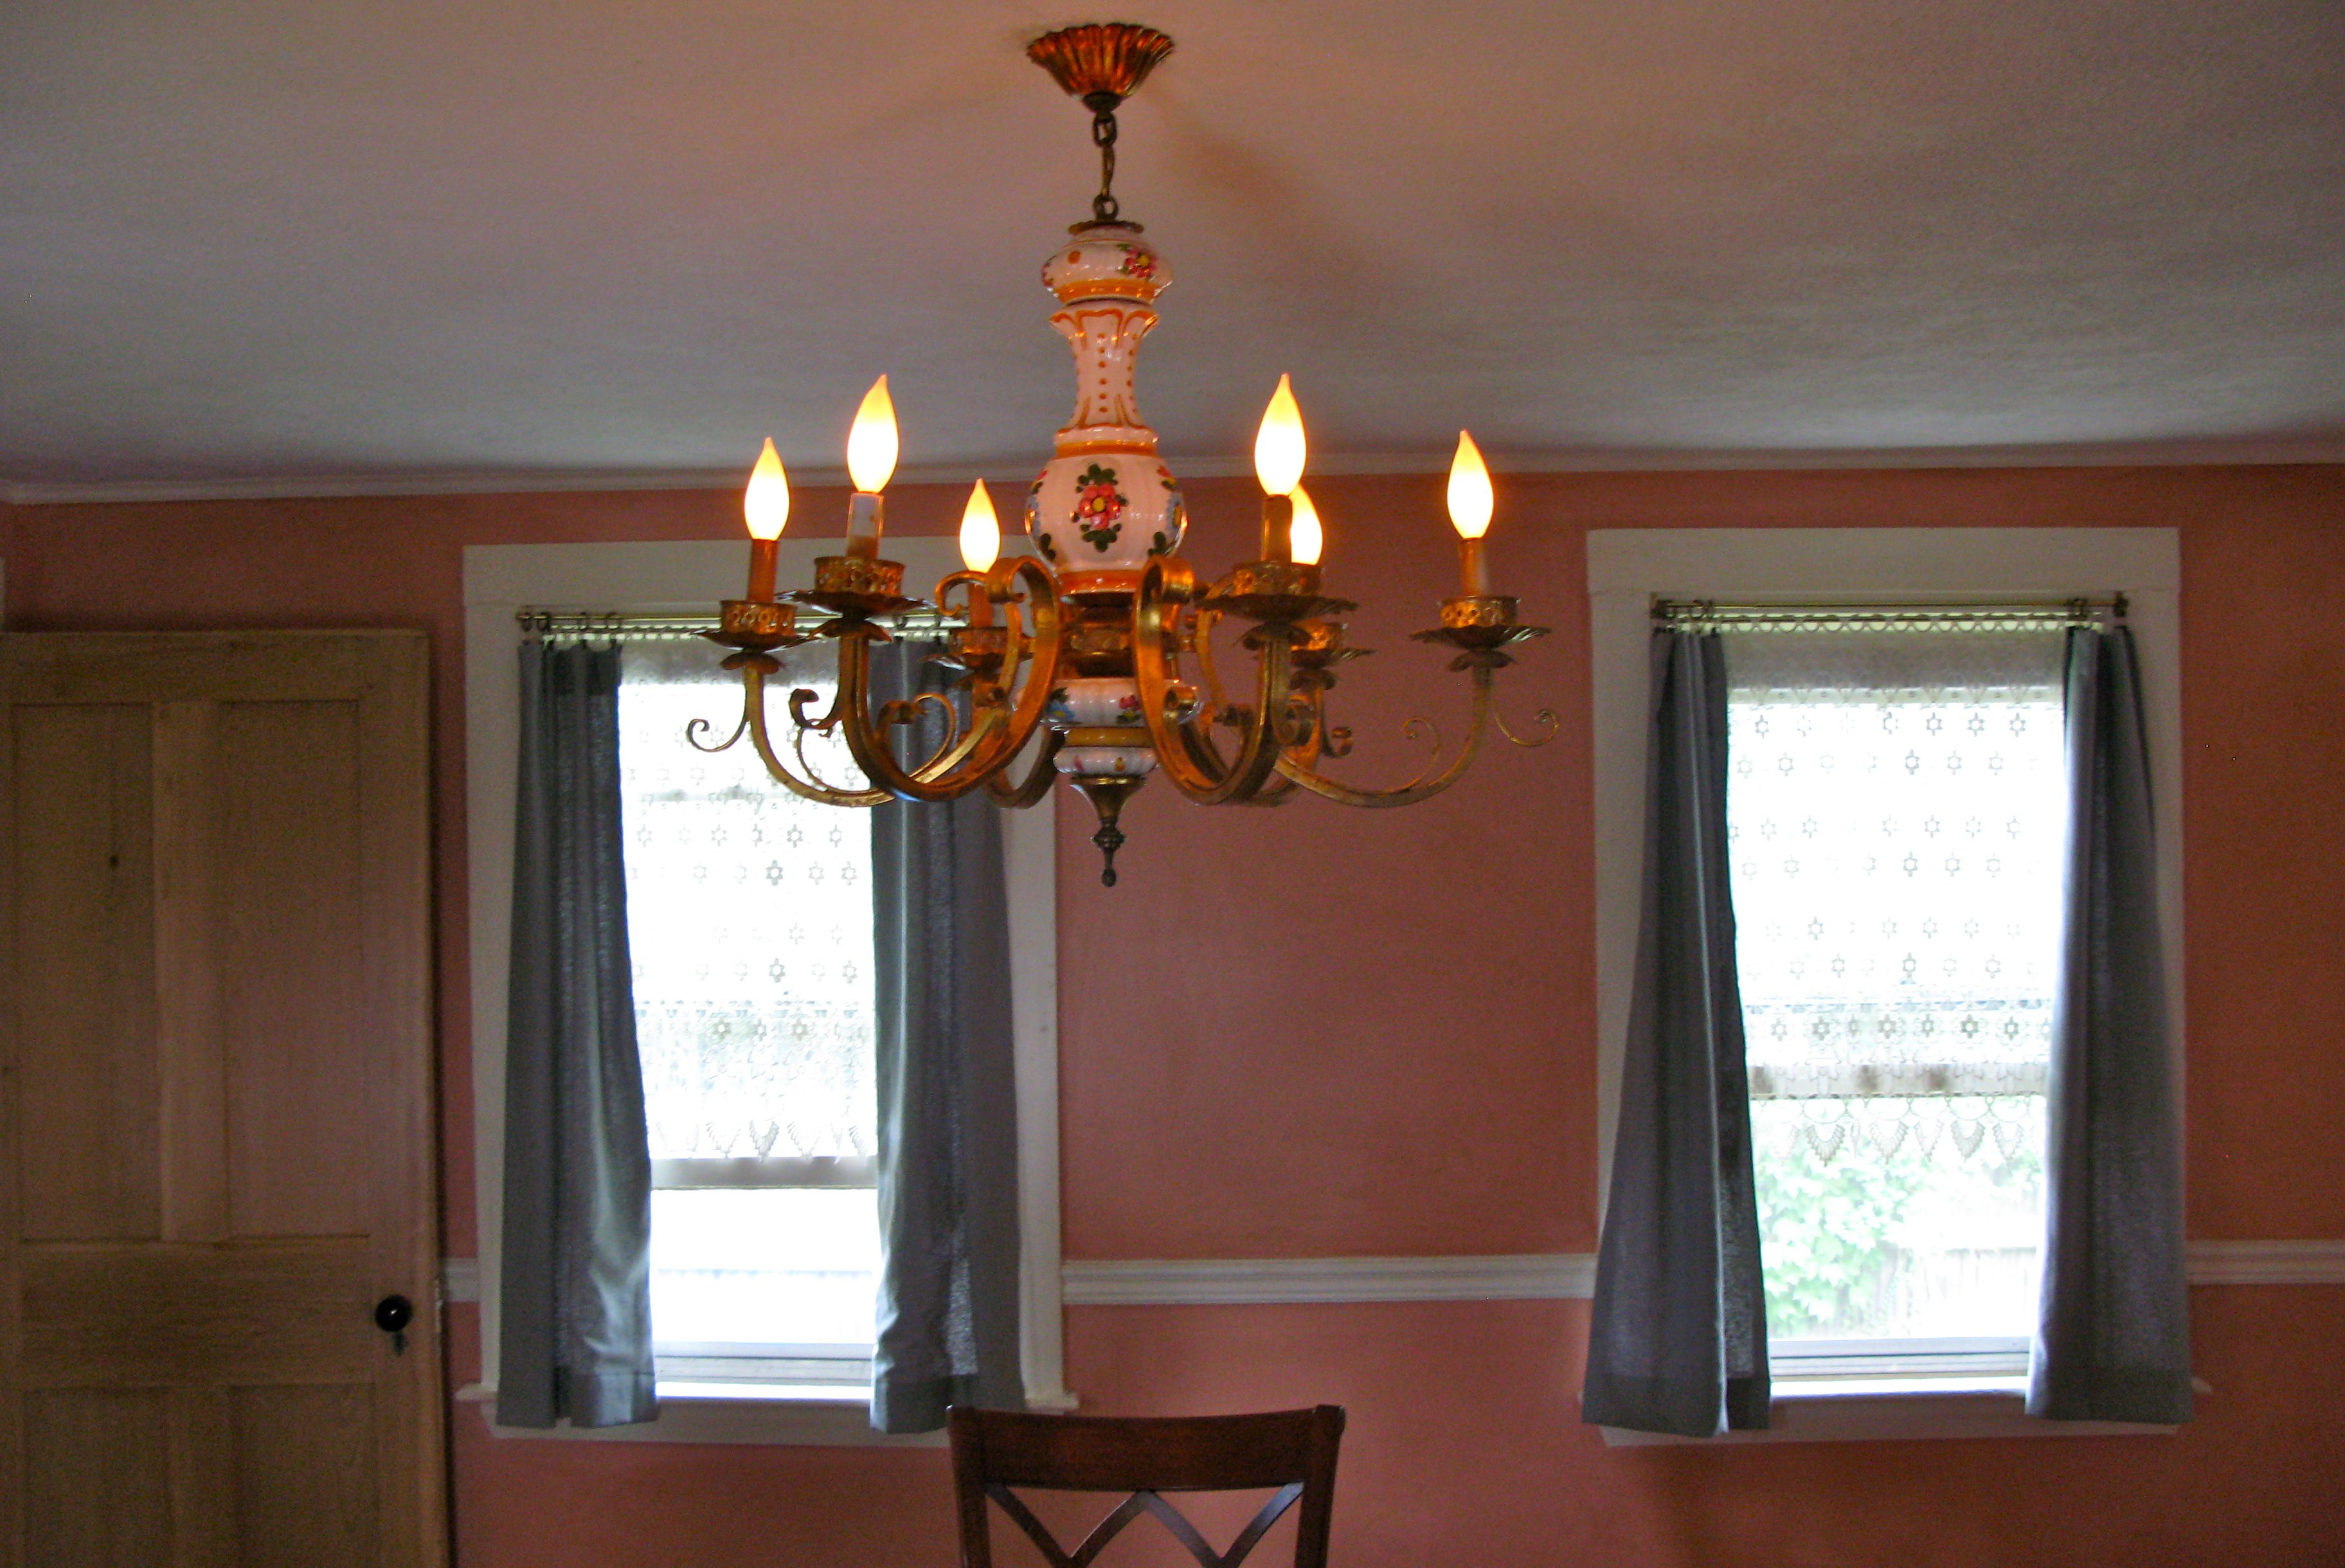 This chandelier was shipped from California to the Boston area.